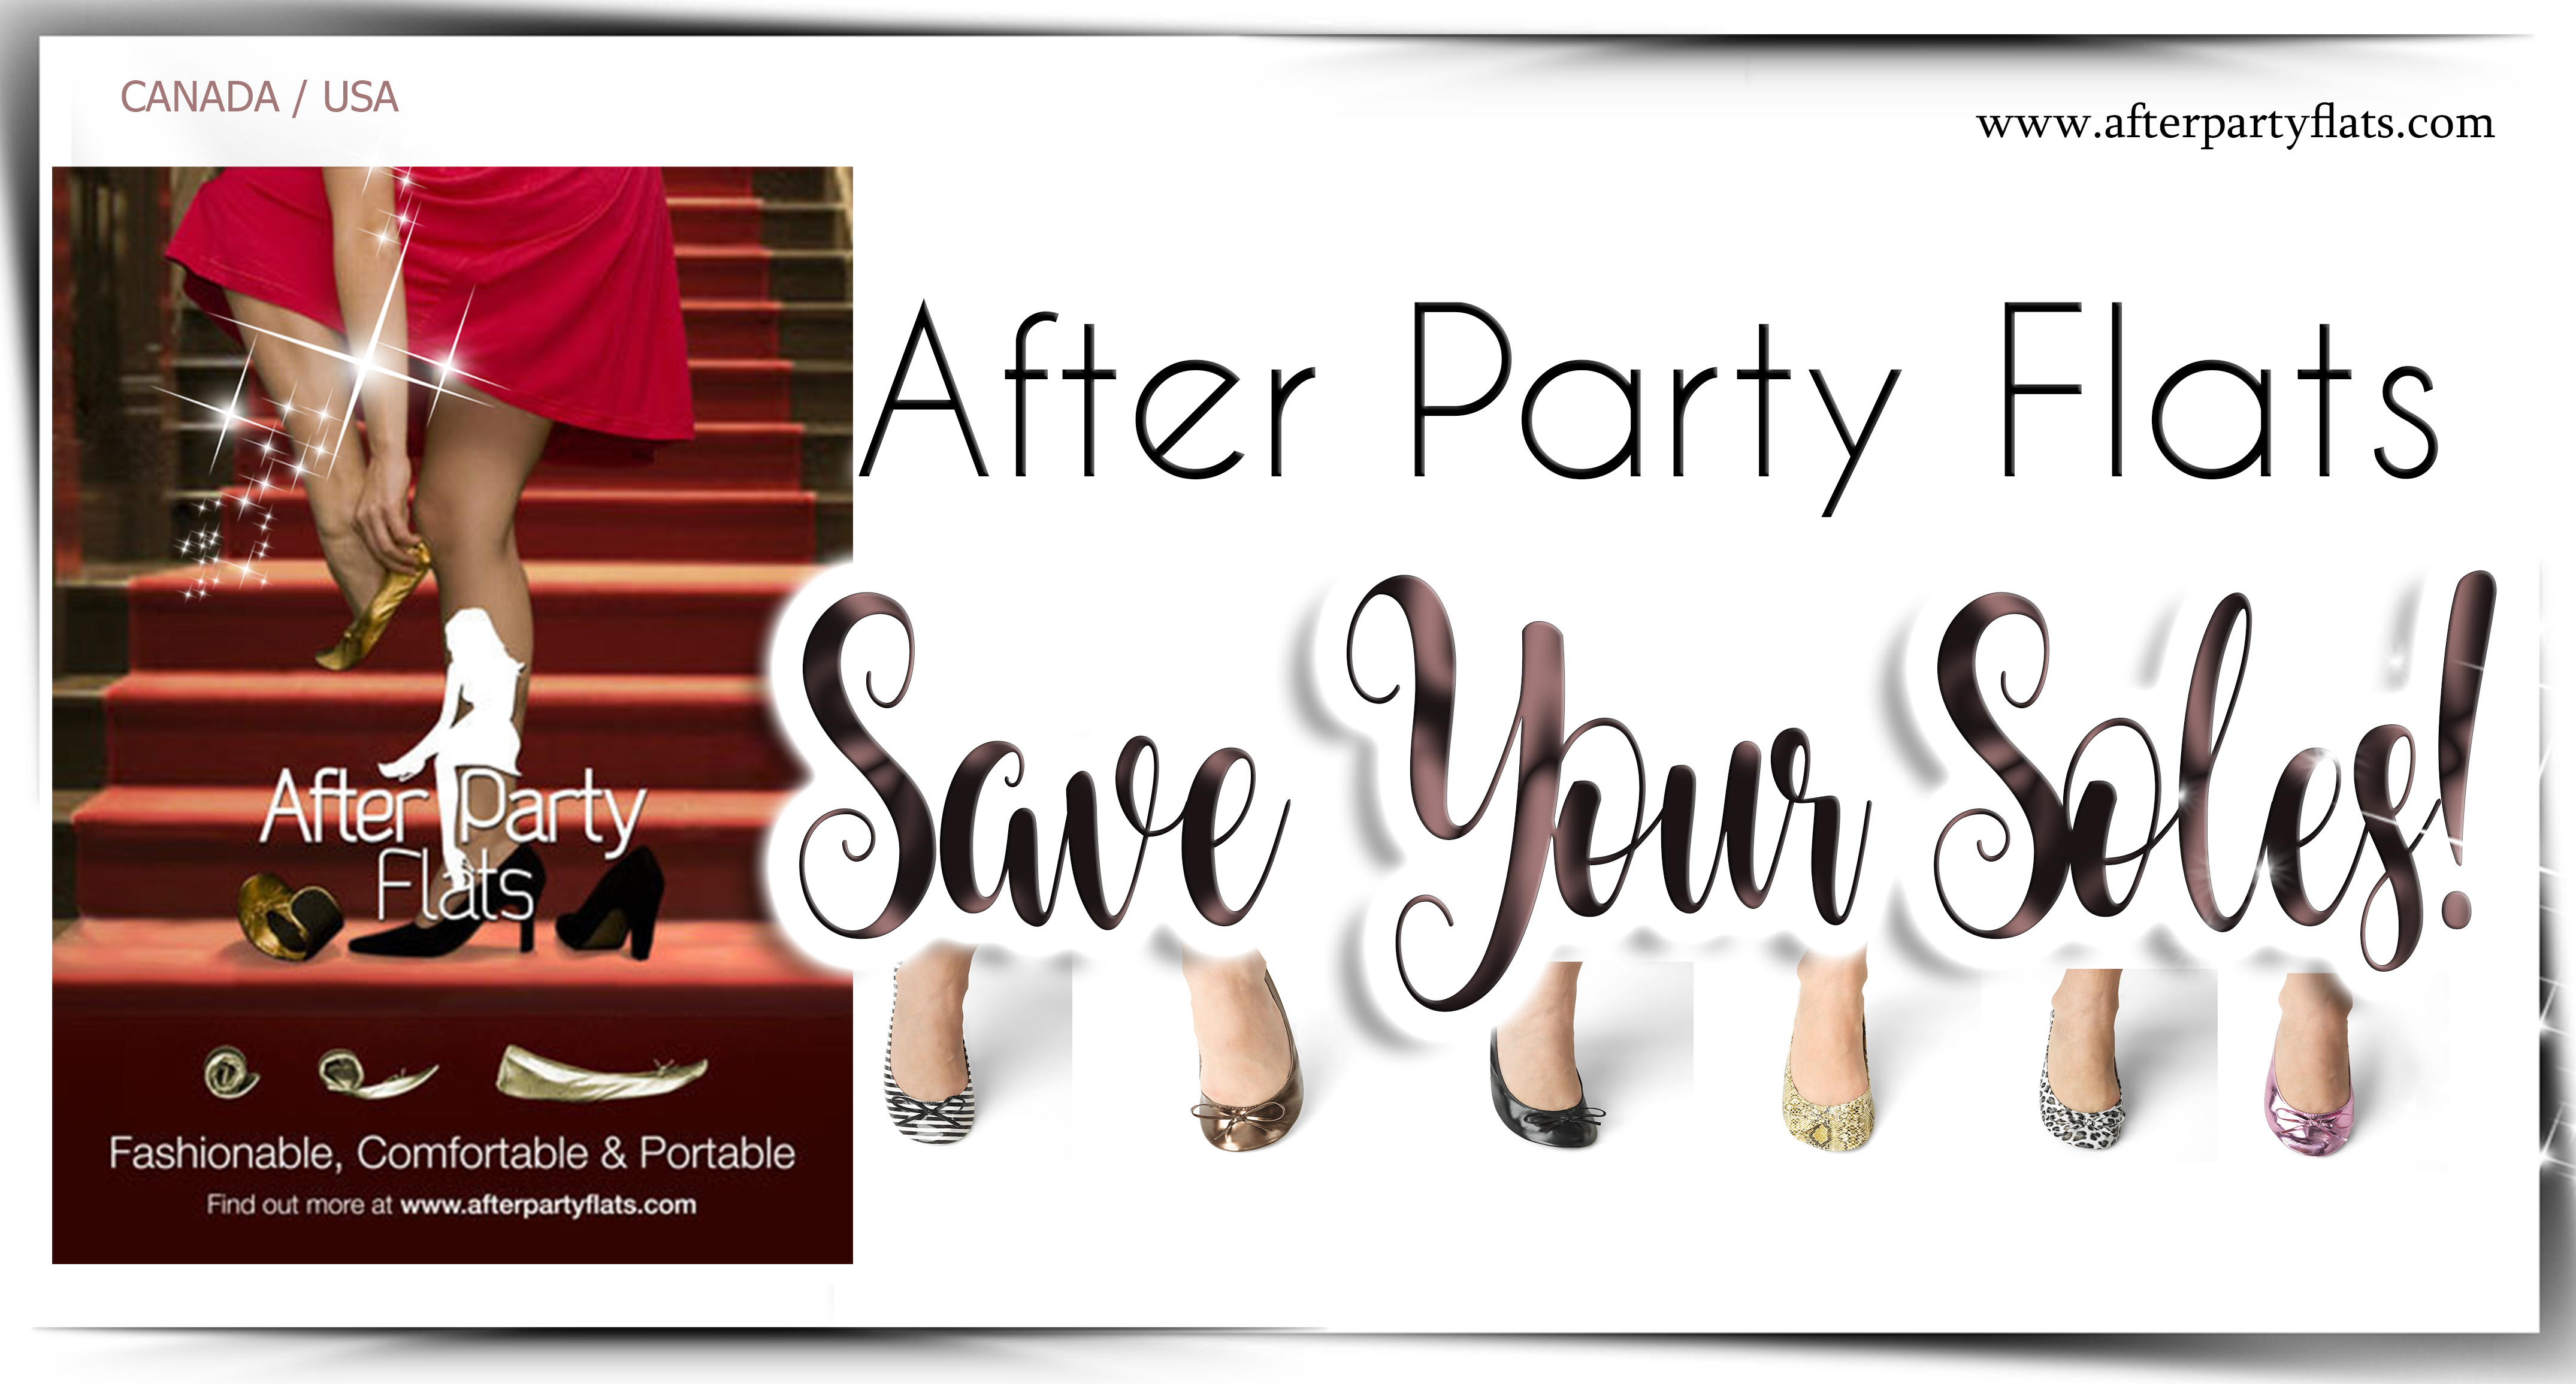 AFTER PARTY FLATS FB COVER PLAIN SHOES 6